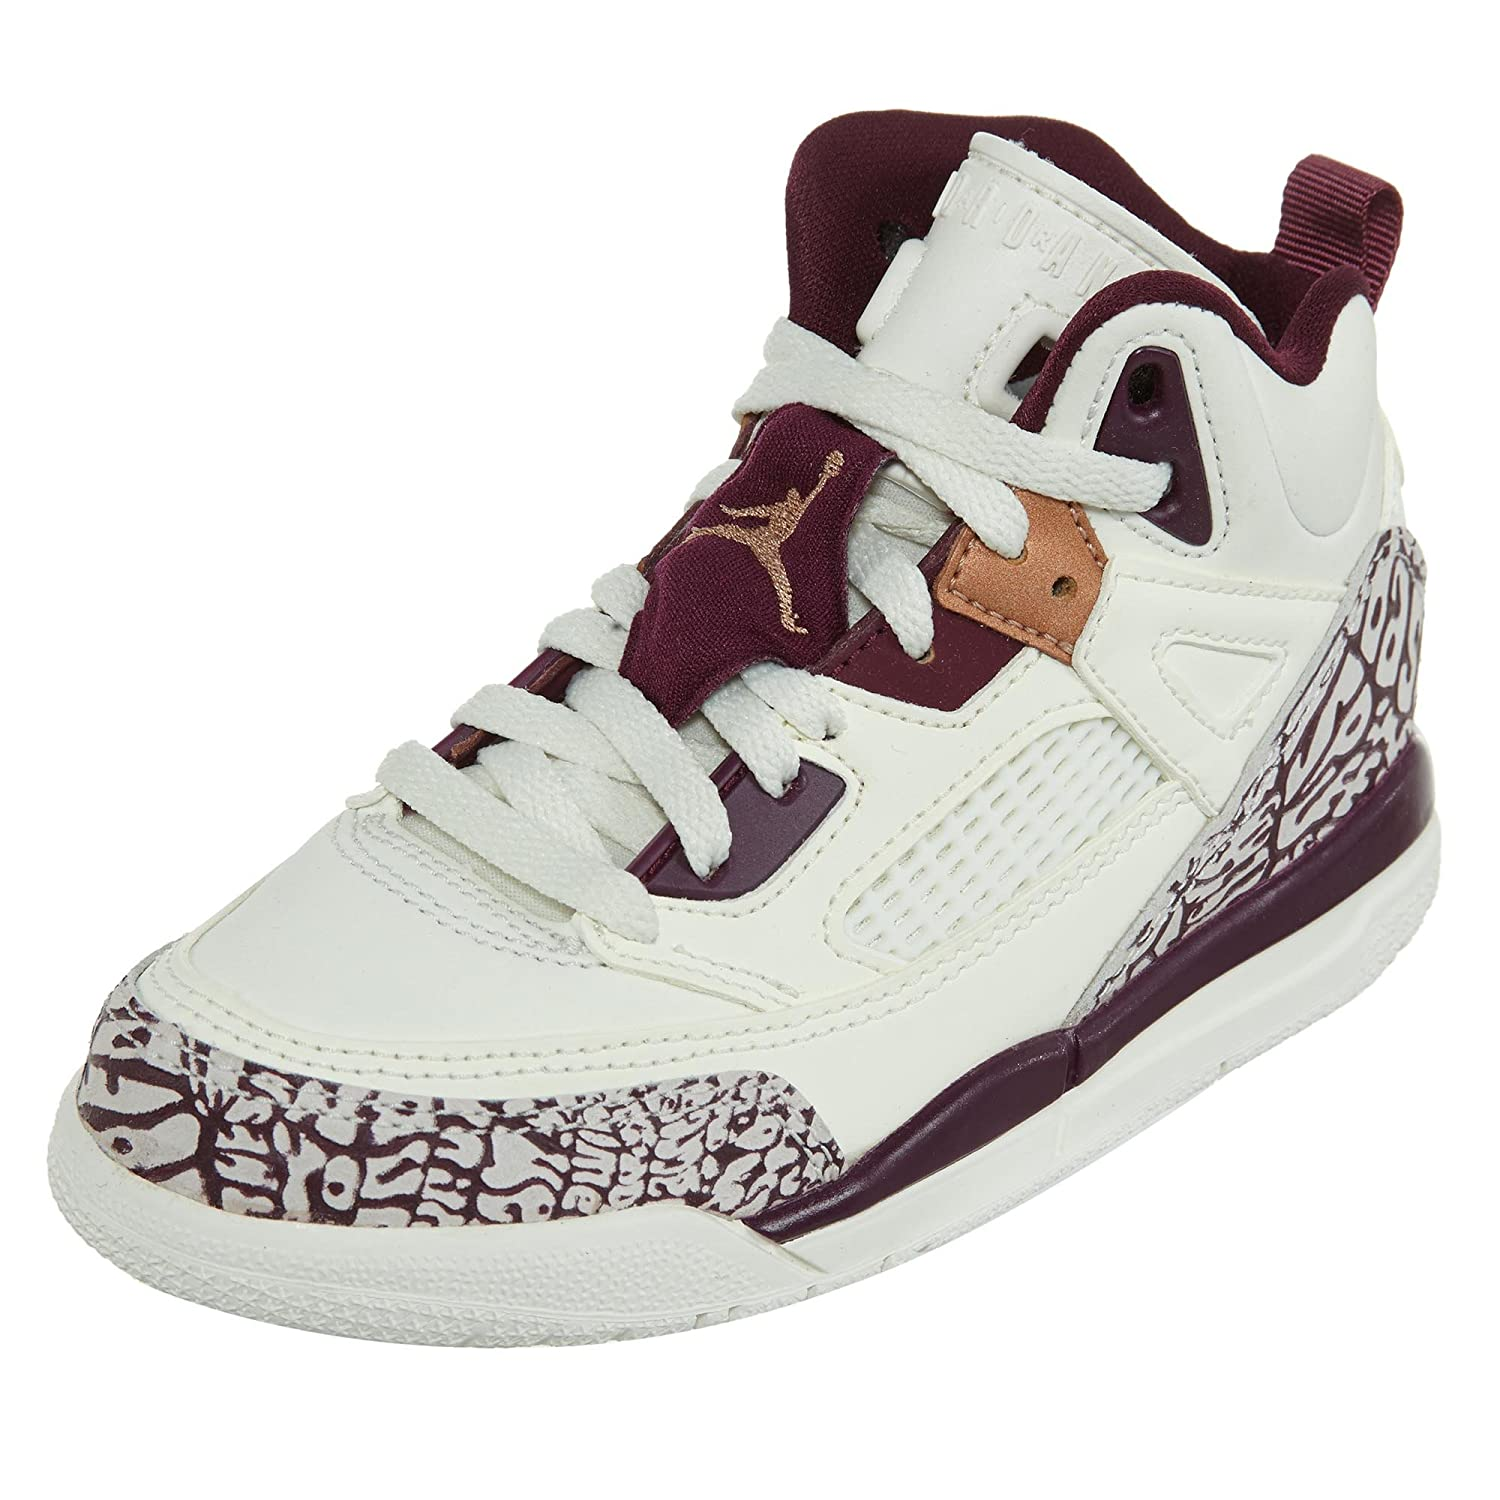 Jordan Girl's Spizike Basketball Shoes 535708